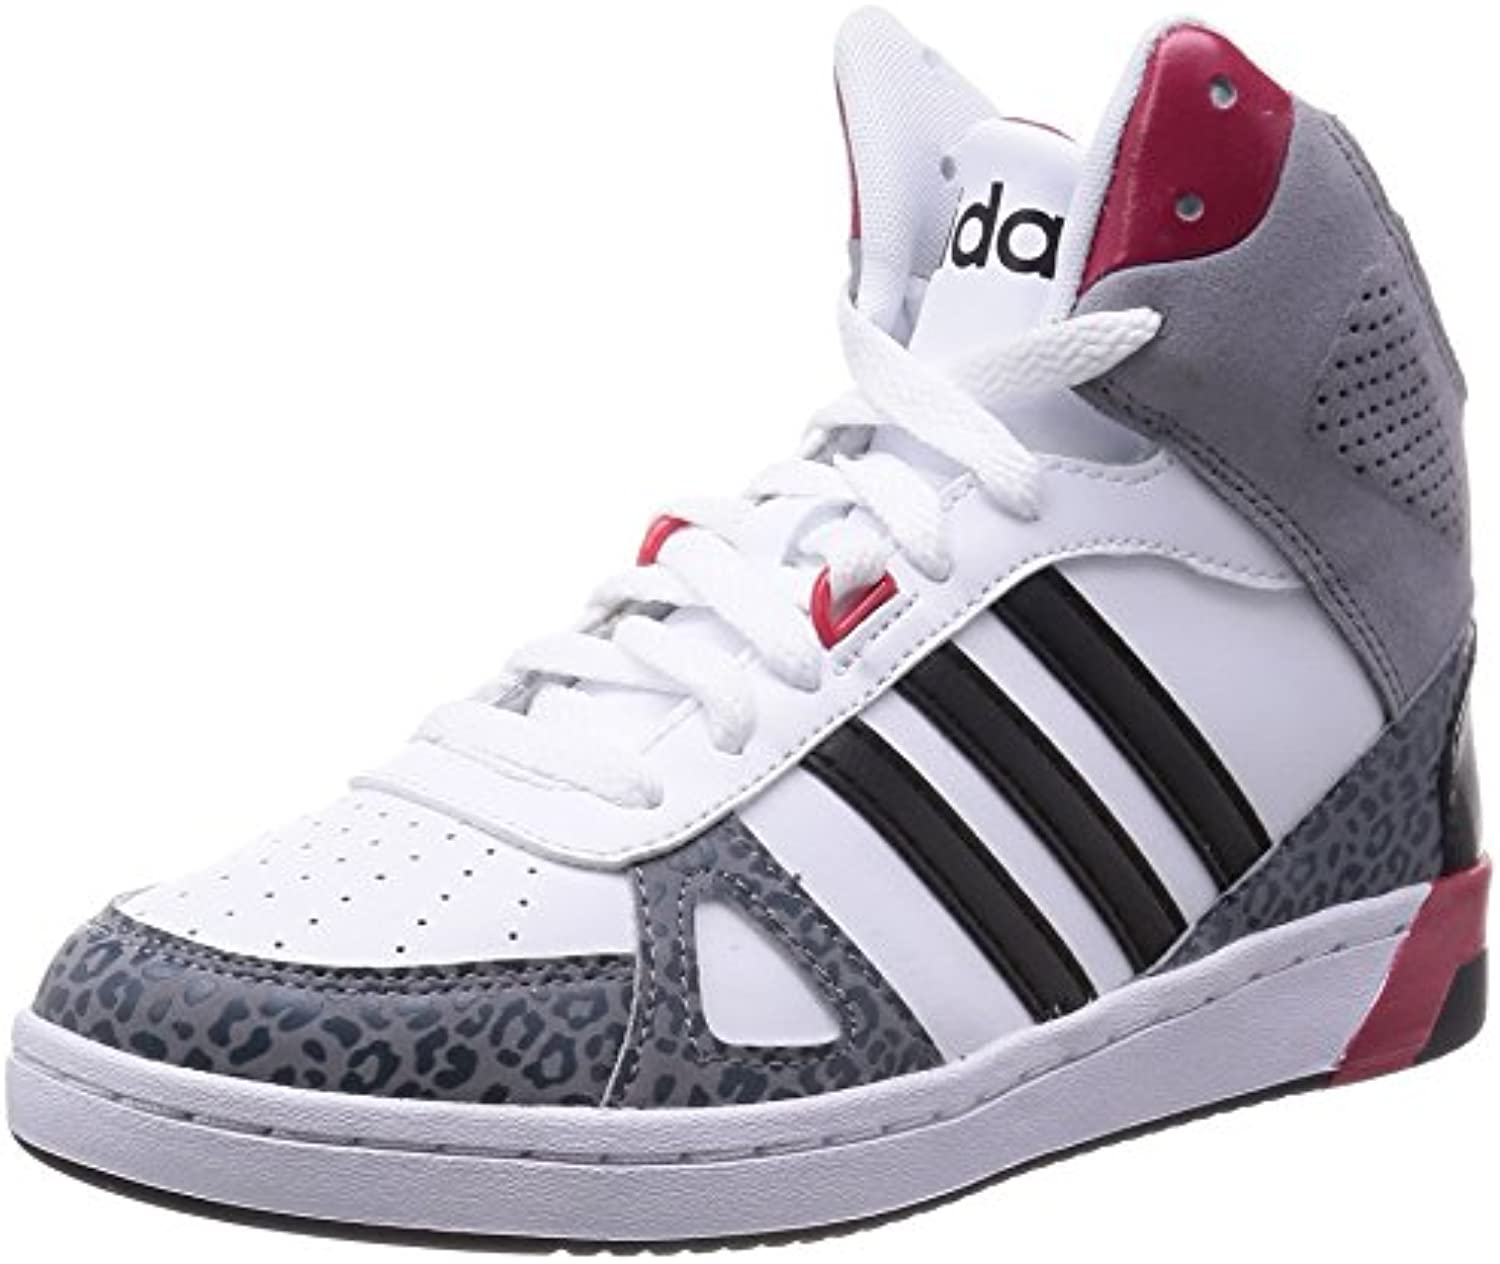 Baskets Femme Chaussures Hoops Neo Mid Team Adidas xq58YwXx